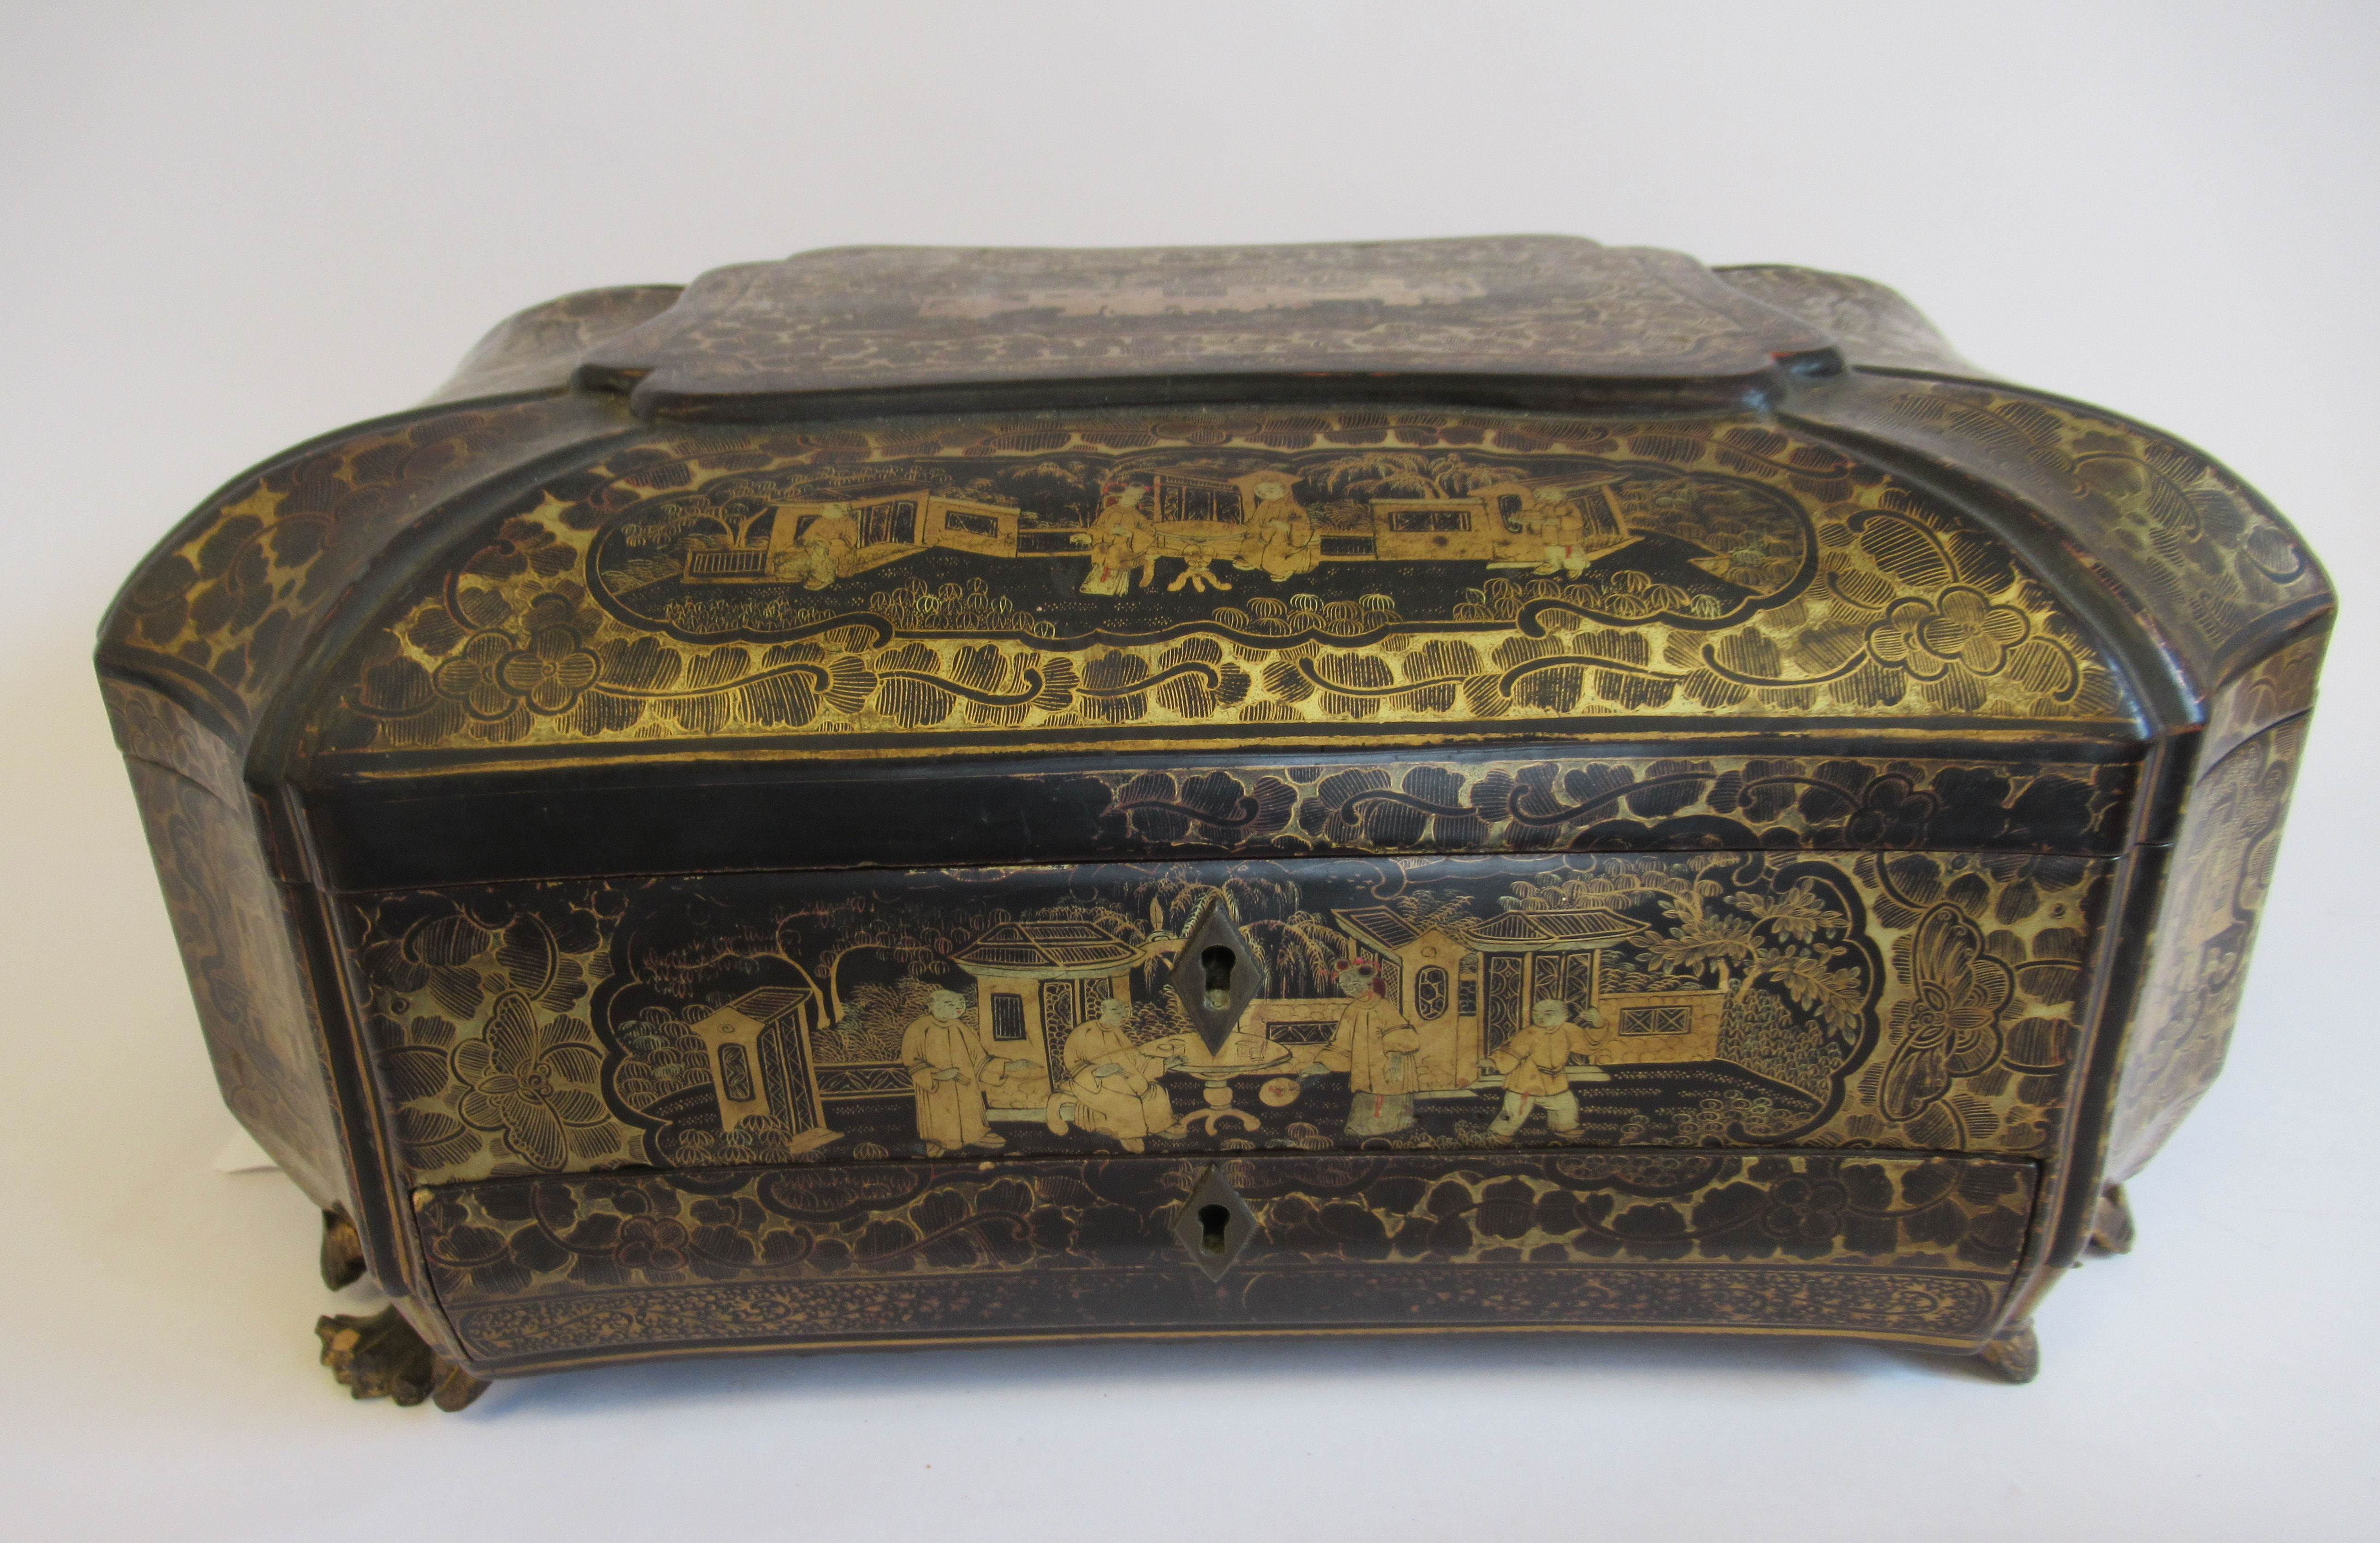 A late 19thC Sino European black lacquered sewing casket of incurved, elongated octagonal form